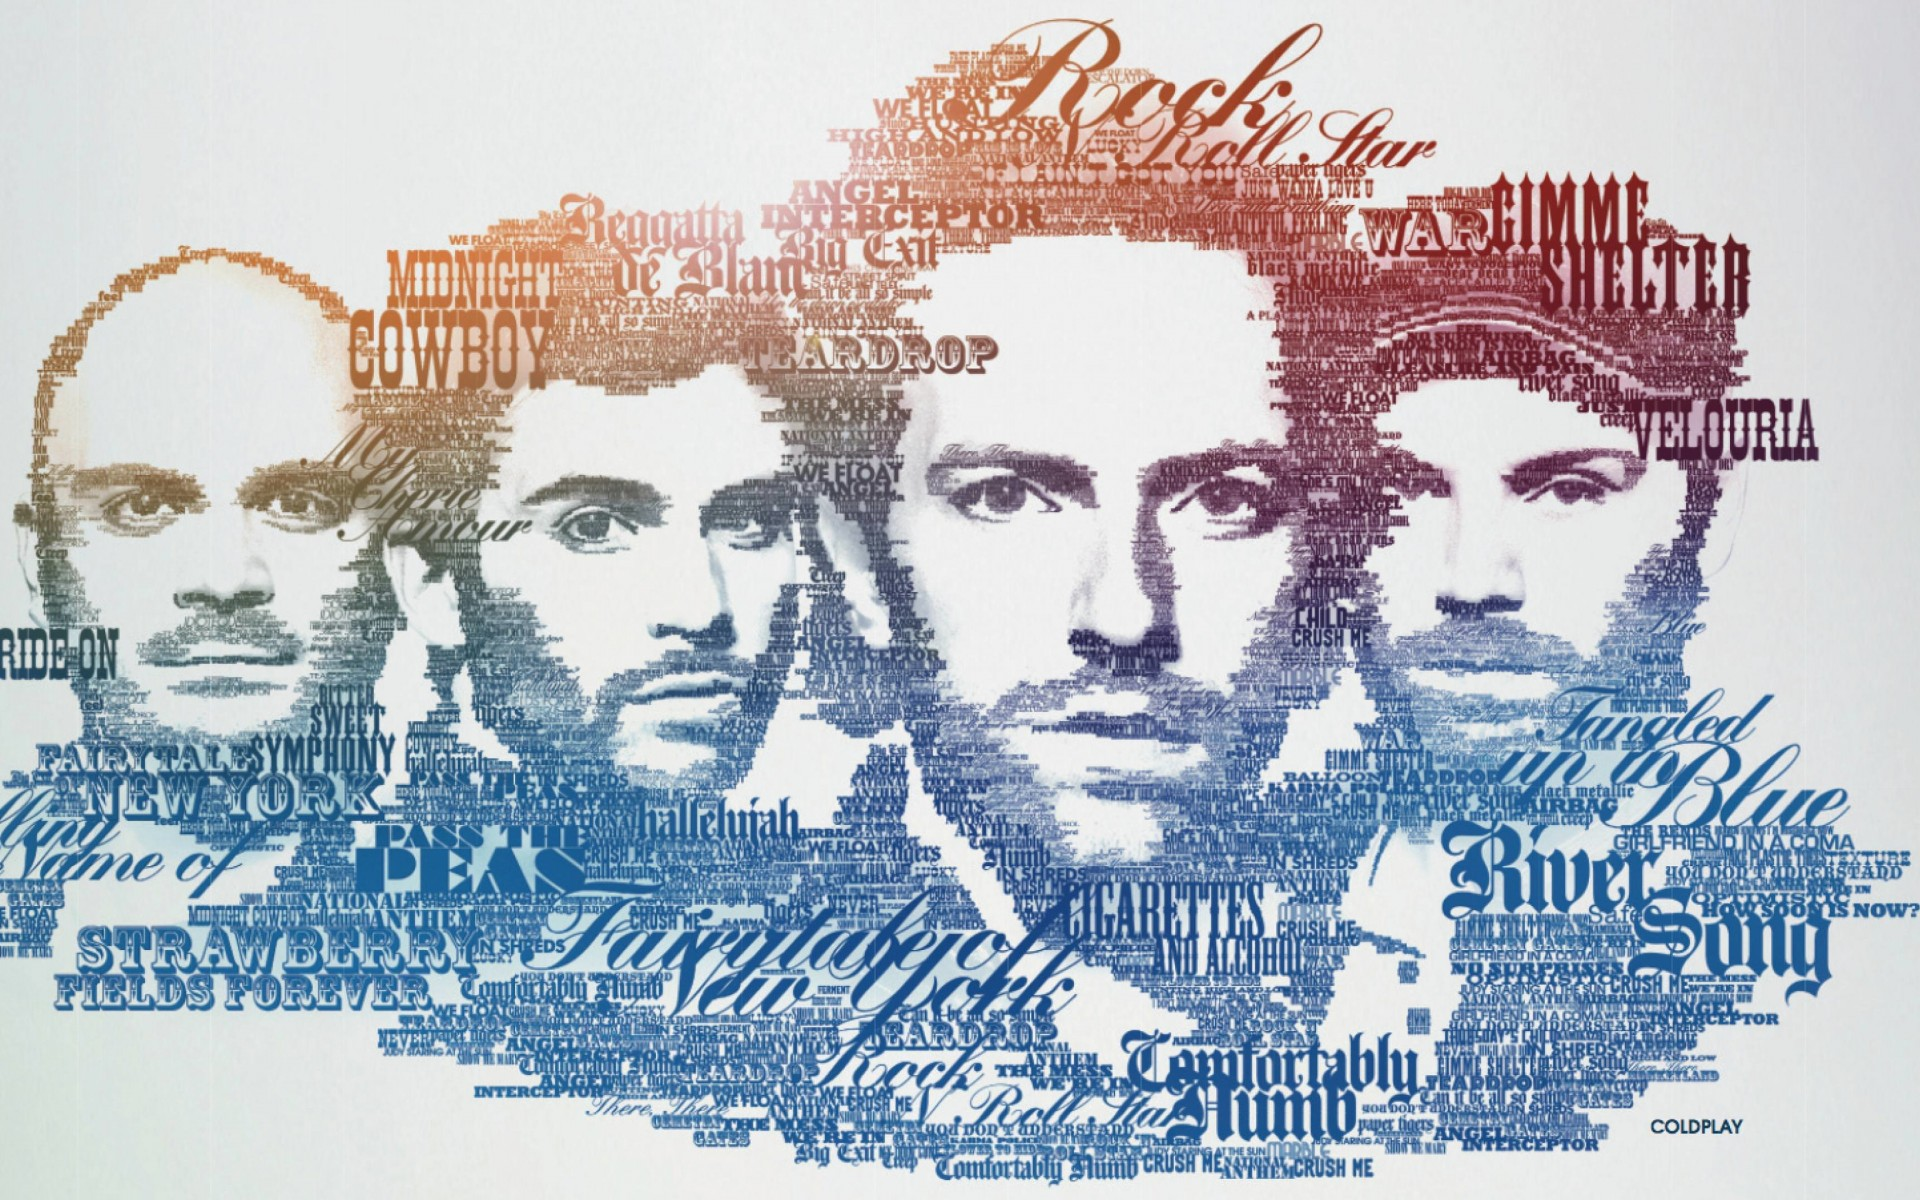 Coldplay Typographic Portrait Wallpaper for Desktop 1920x1200